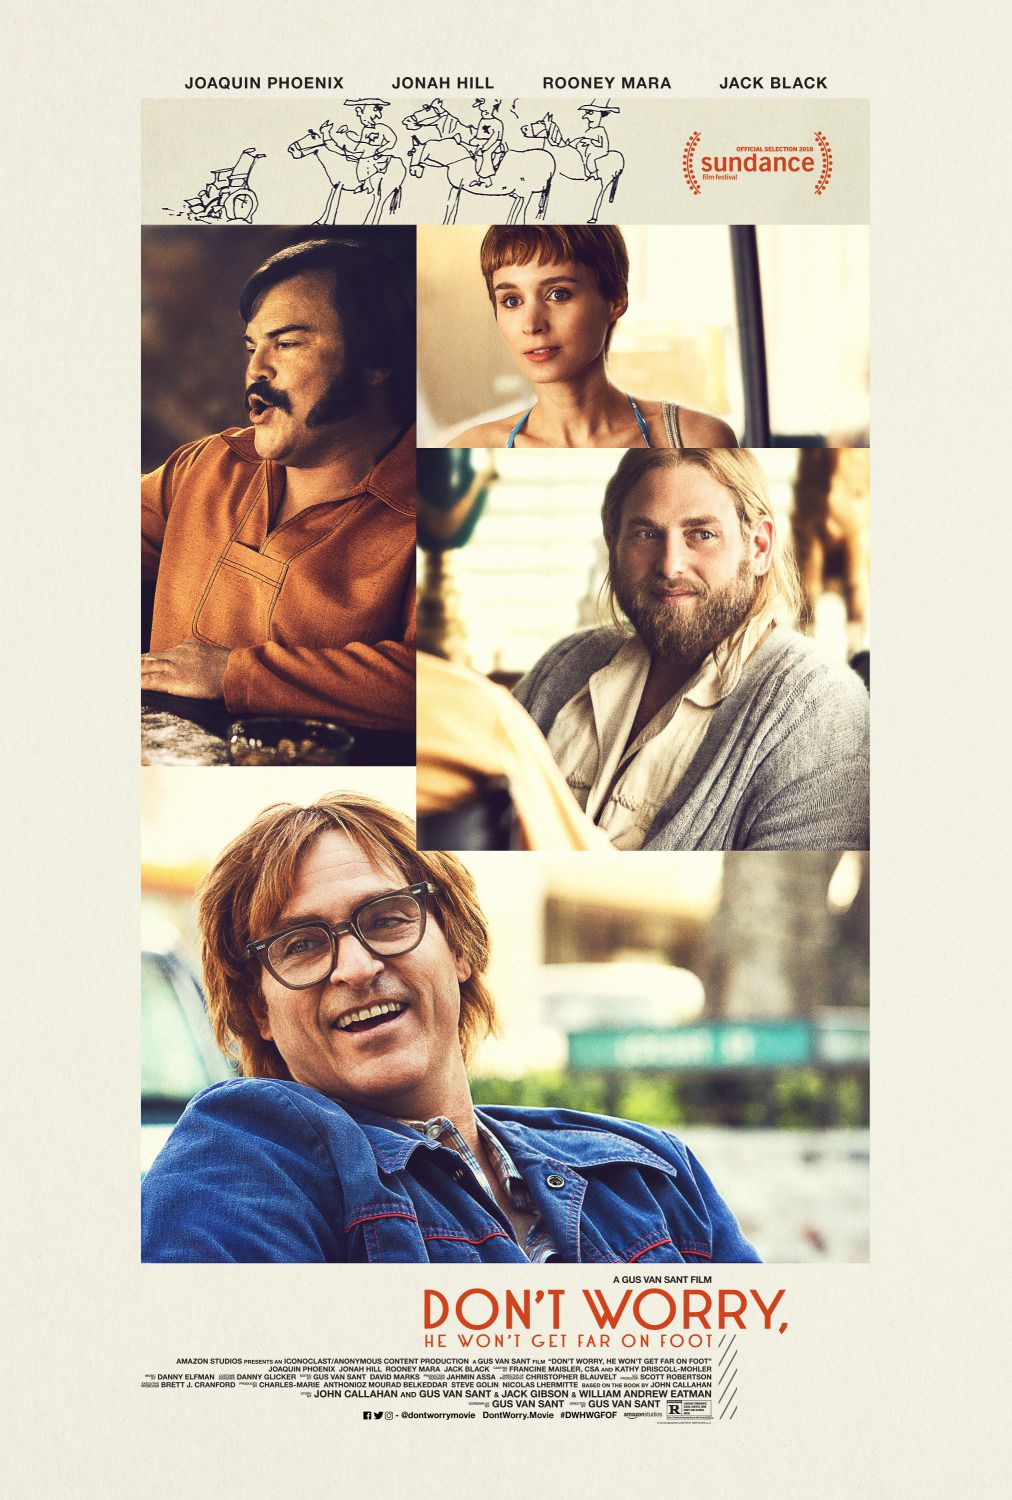 Dont Worry He wont get far on Foot by Gus Van Sant - Non ti preoccupare non andrà lontano a piedi - Cast: Joaquin Phoenix, Rooney Mara, Jonah Hill, Jack Black - handicap love comedy and sotry film poster